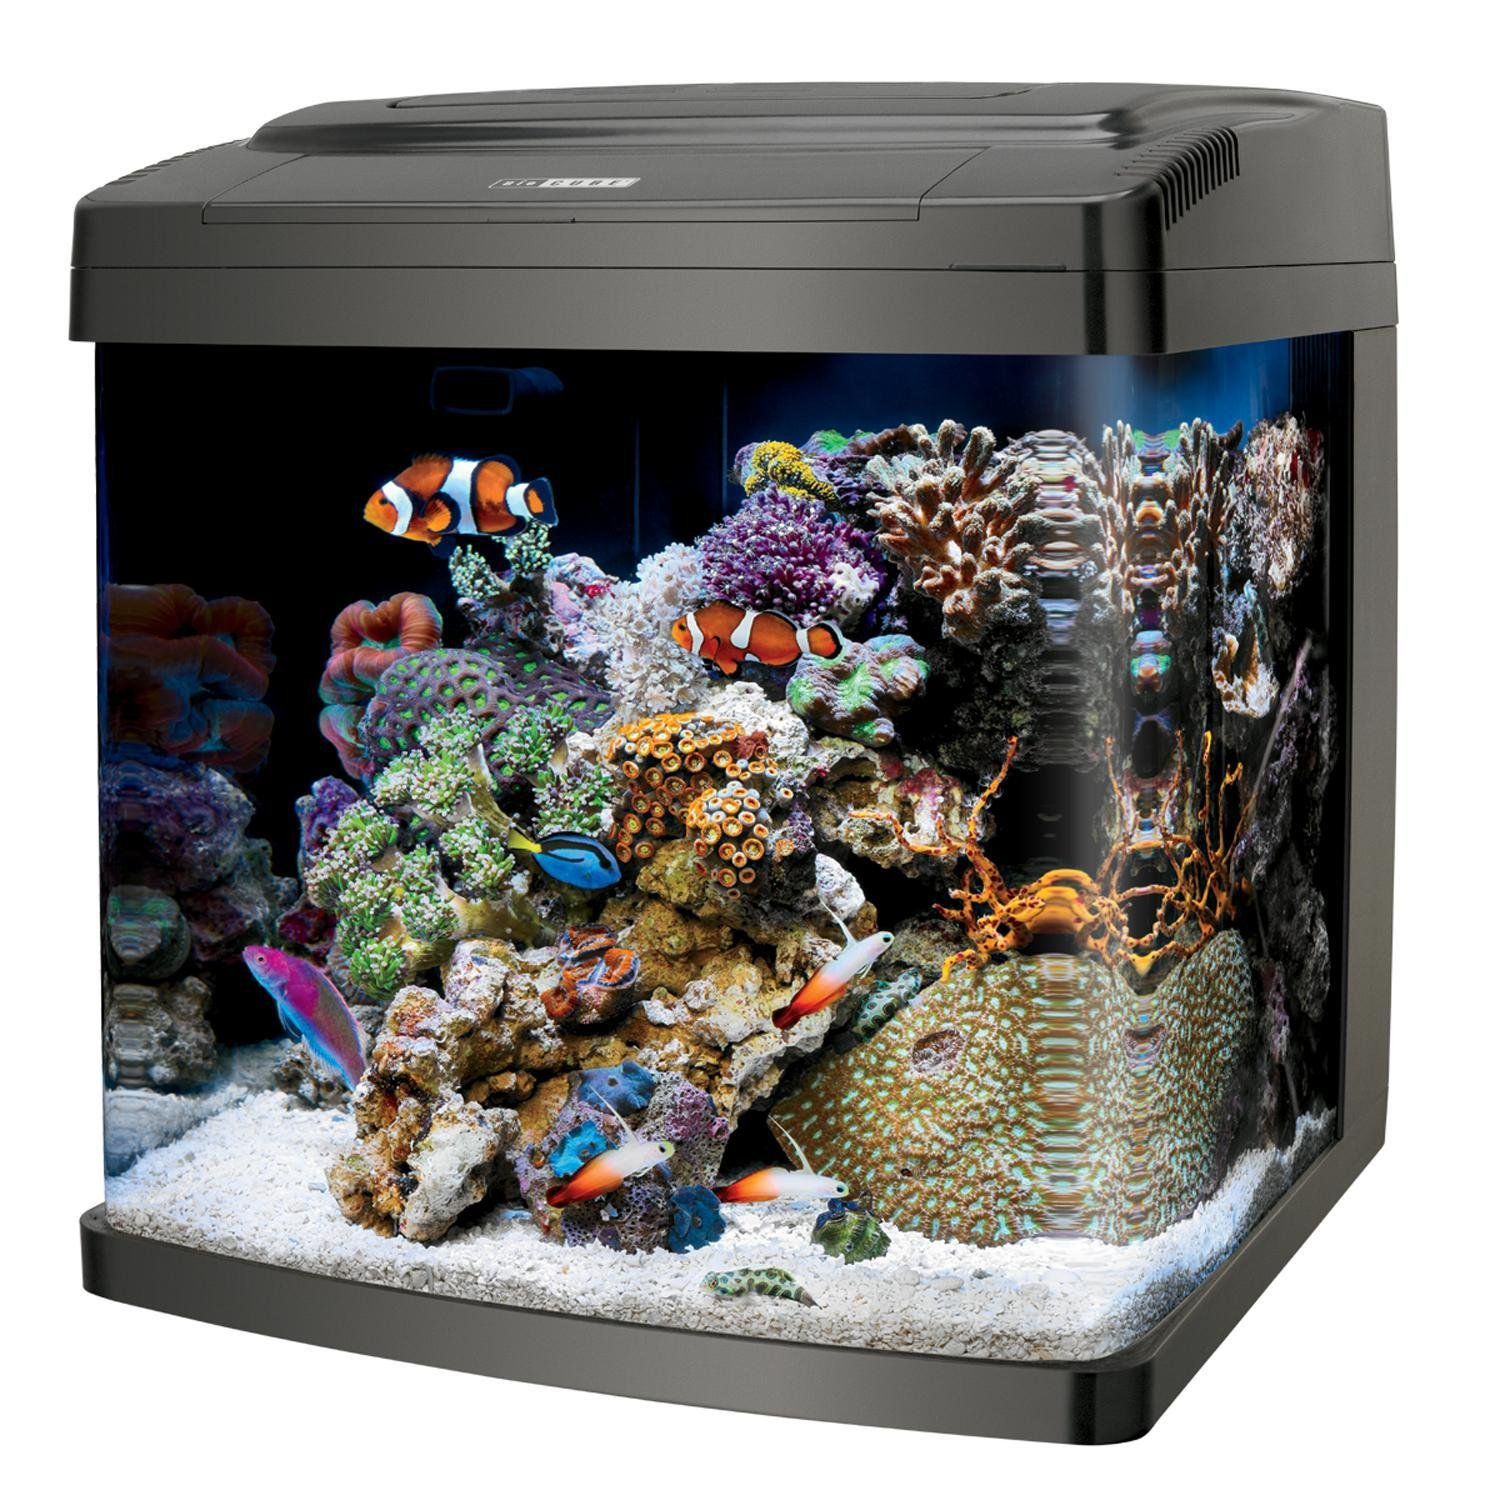 Aquarium fish tank price - Aquarium Fish Tank Price